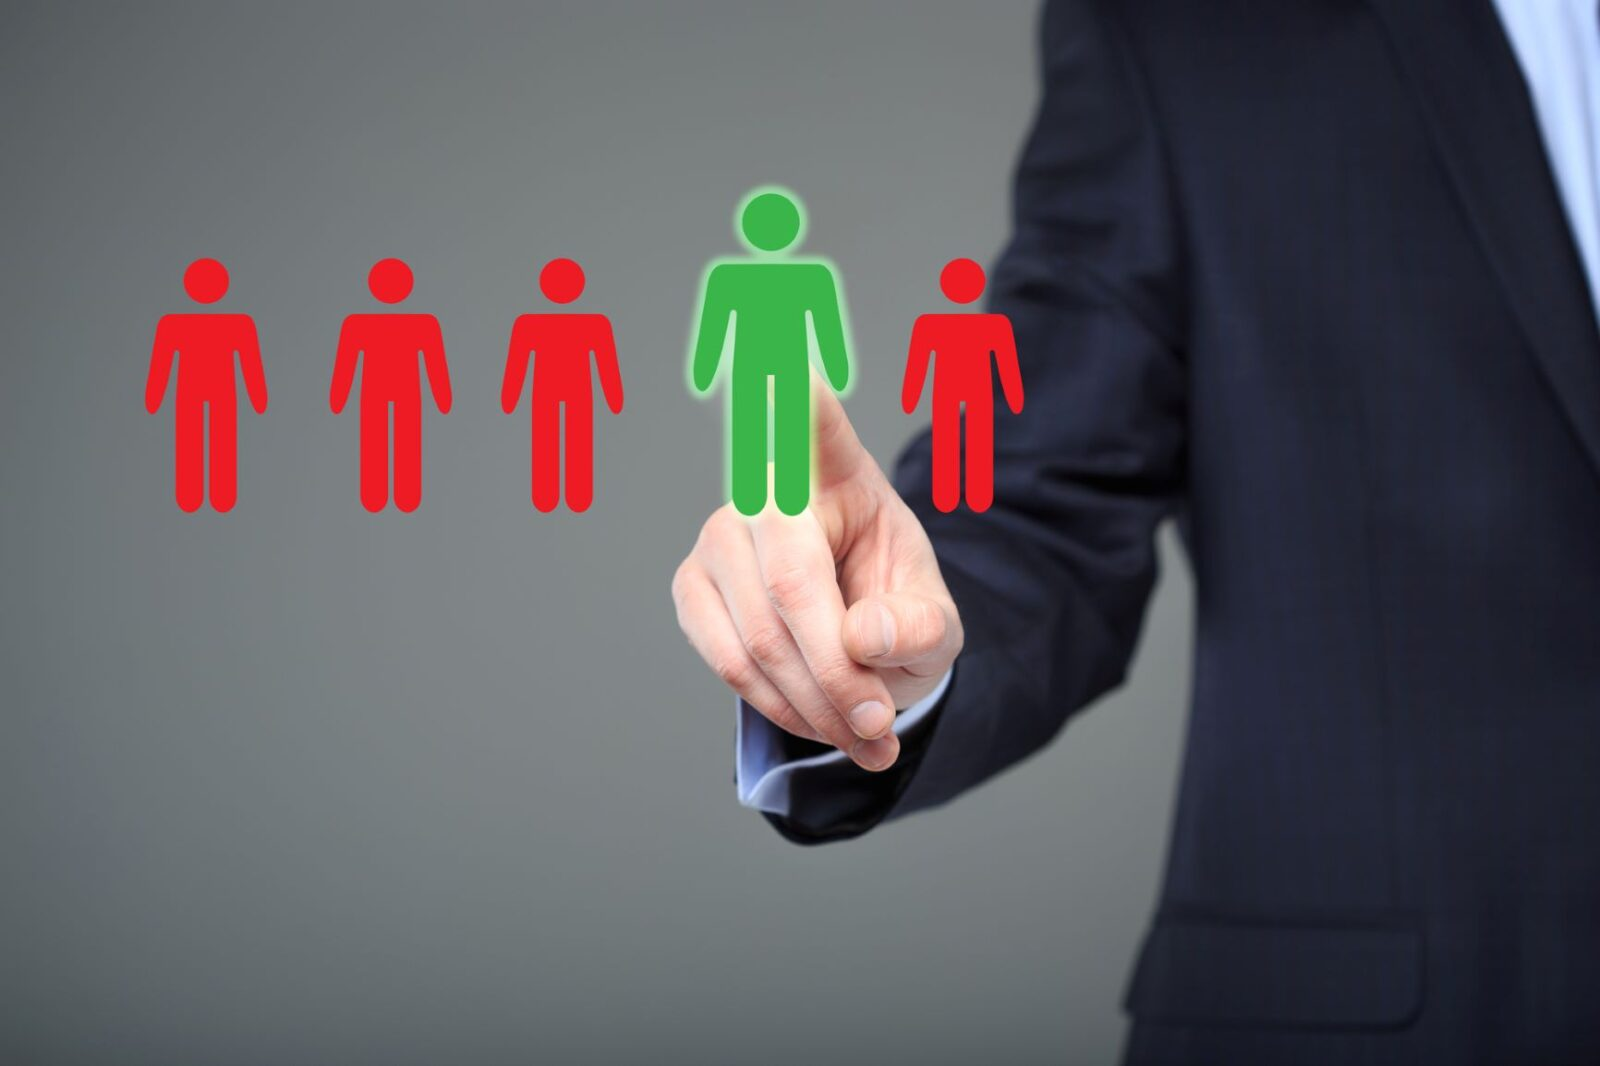 A row of five animated human icons, four the same size and colored red, while one is being indicated by a person in a business suit, and appears larger and colored green.